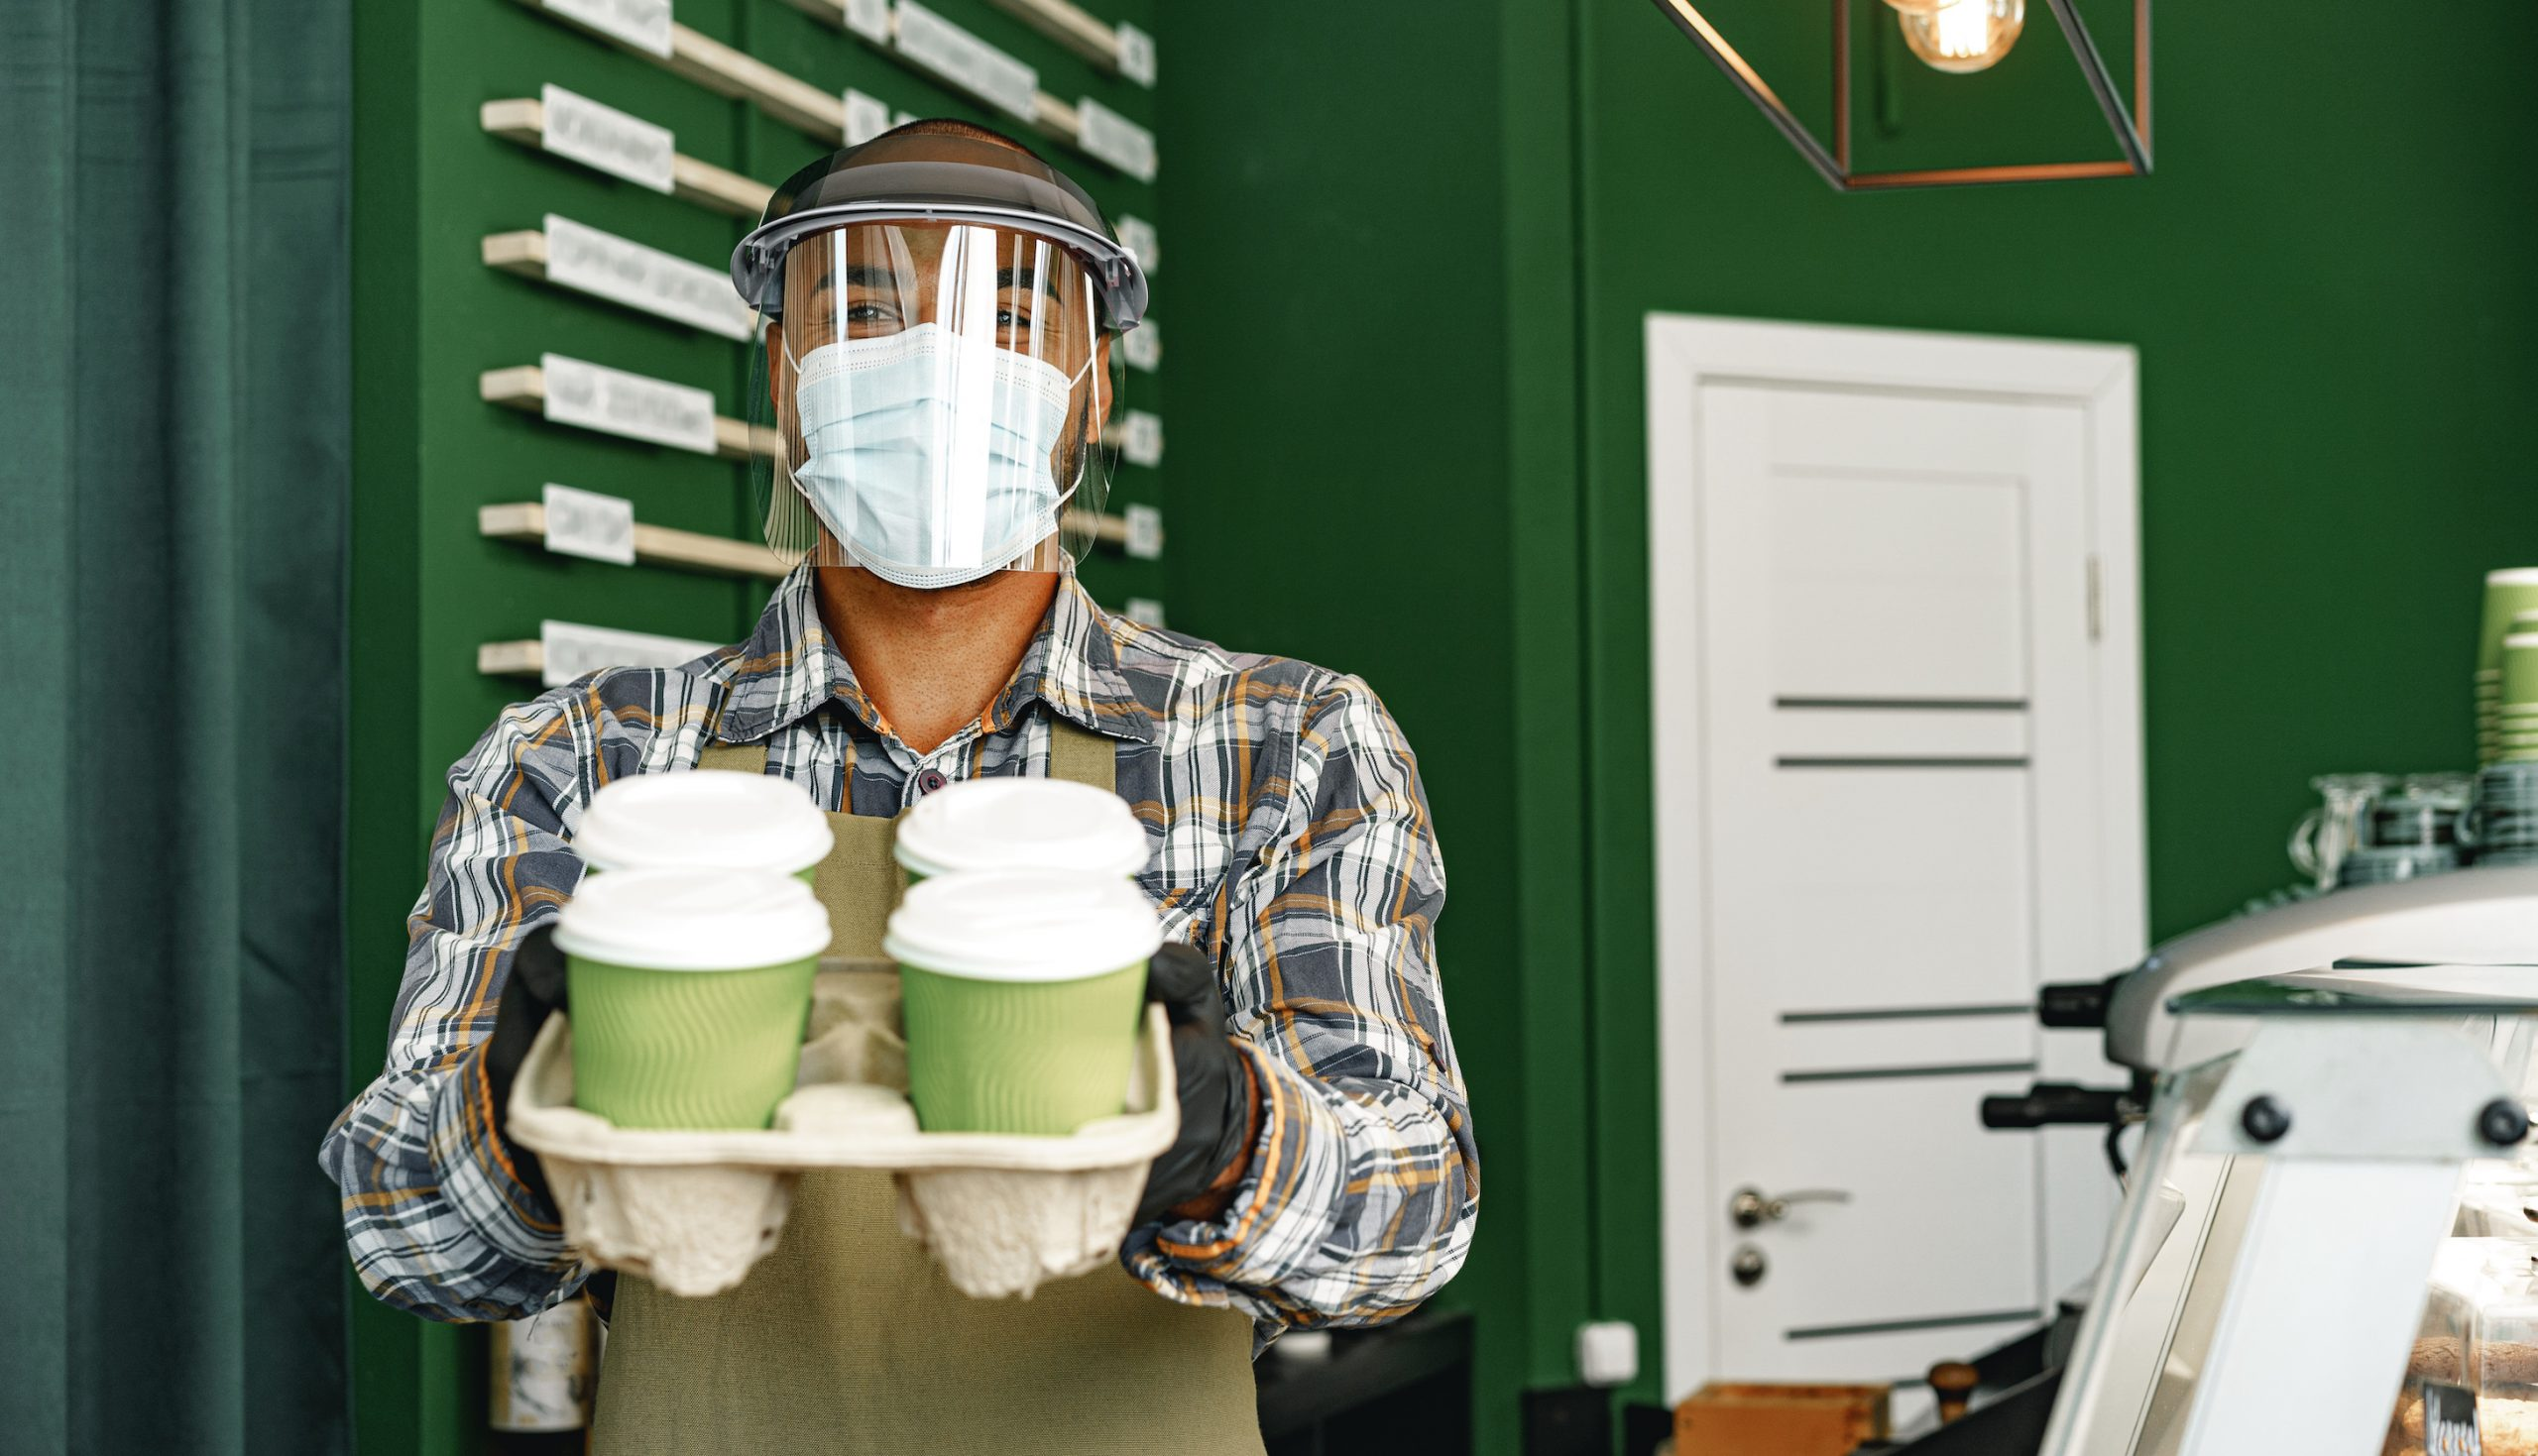 The Pandemic vs. The Hospitality Industry